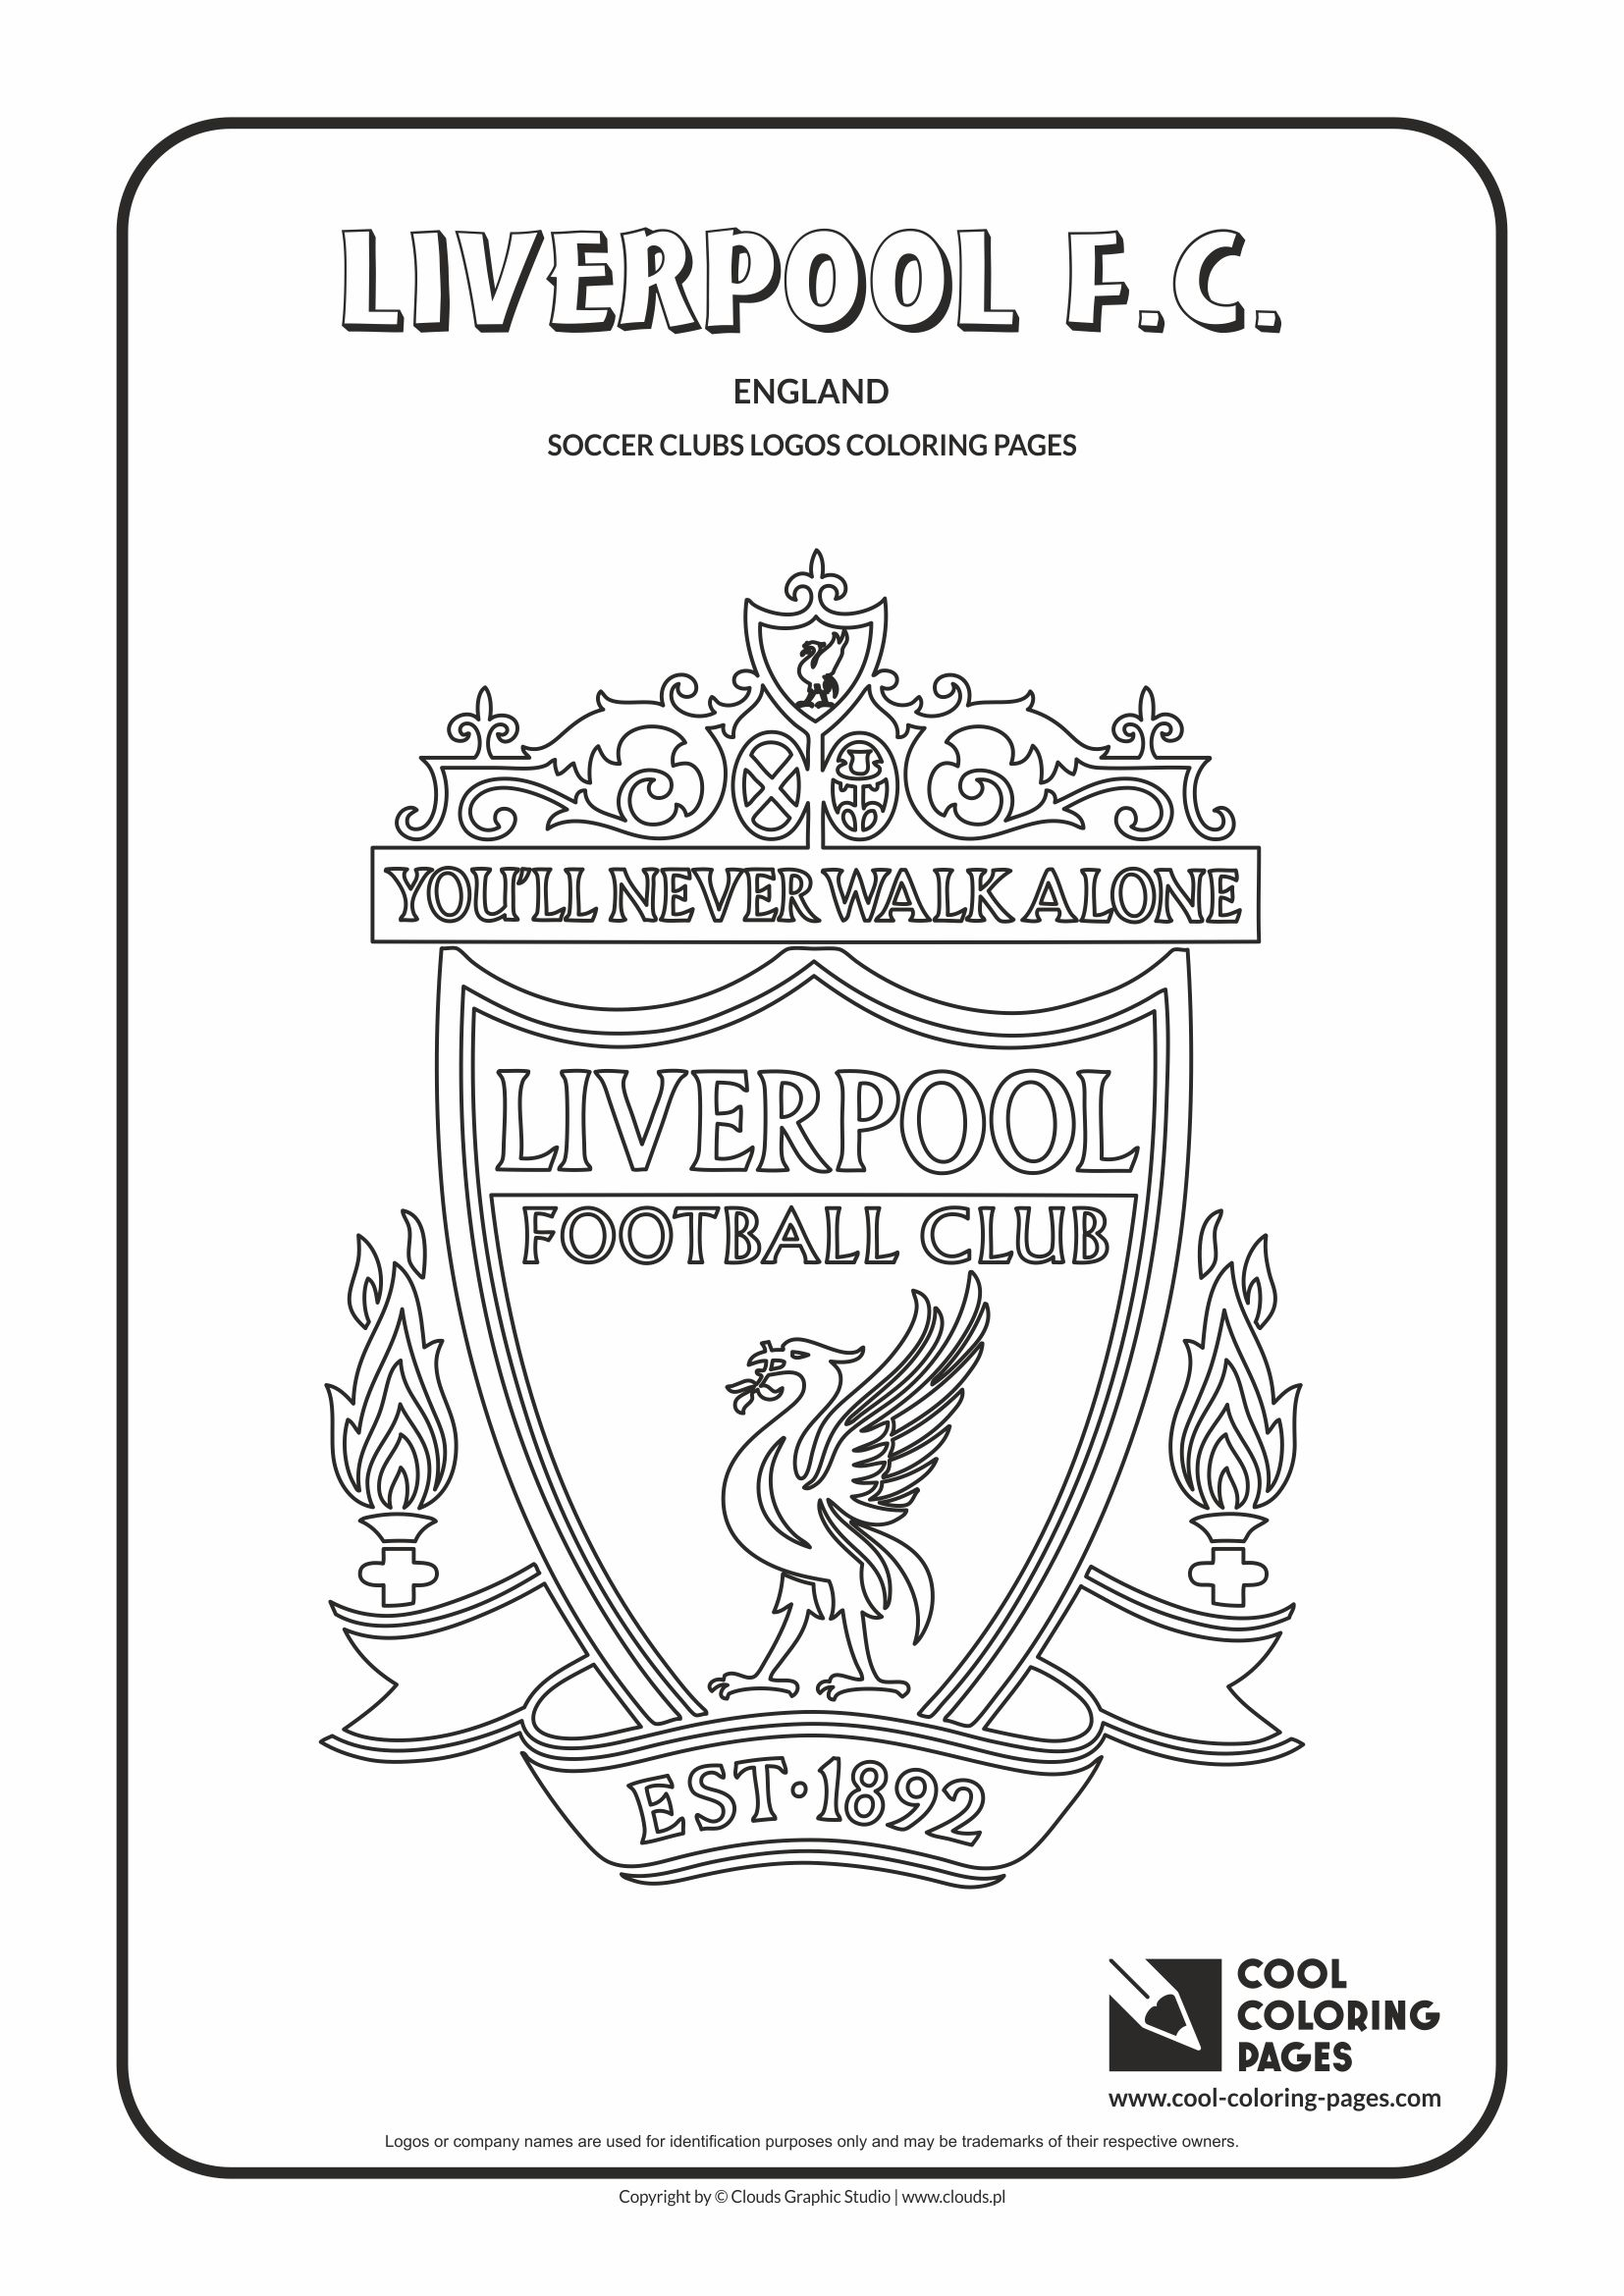 liverpool fc logo coloring coloring page with liverpool fc logo liverpool logo colouring page